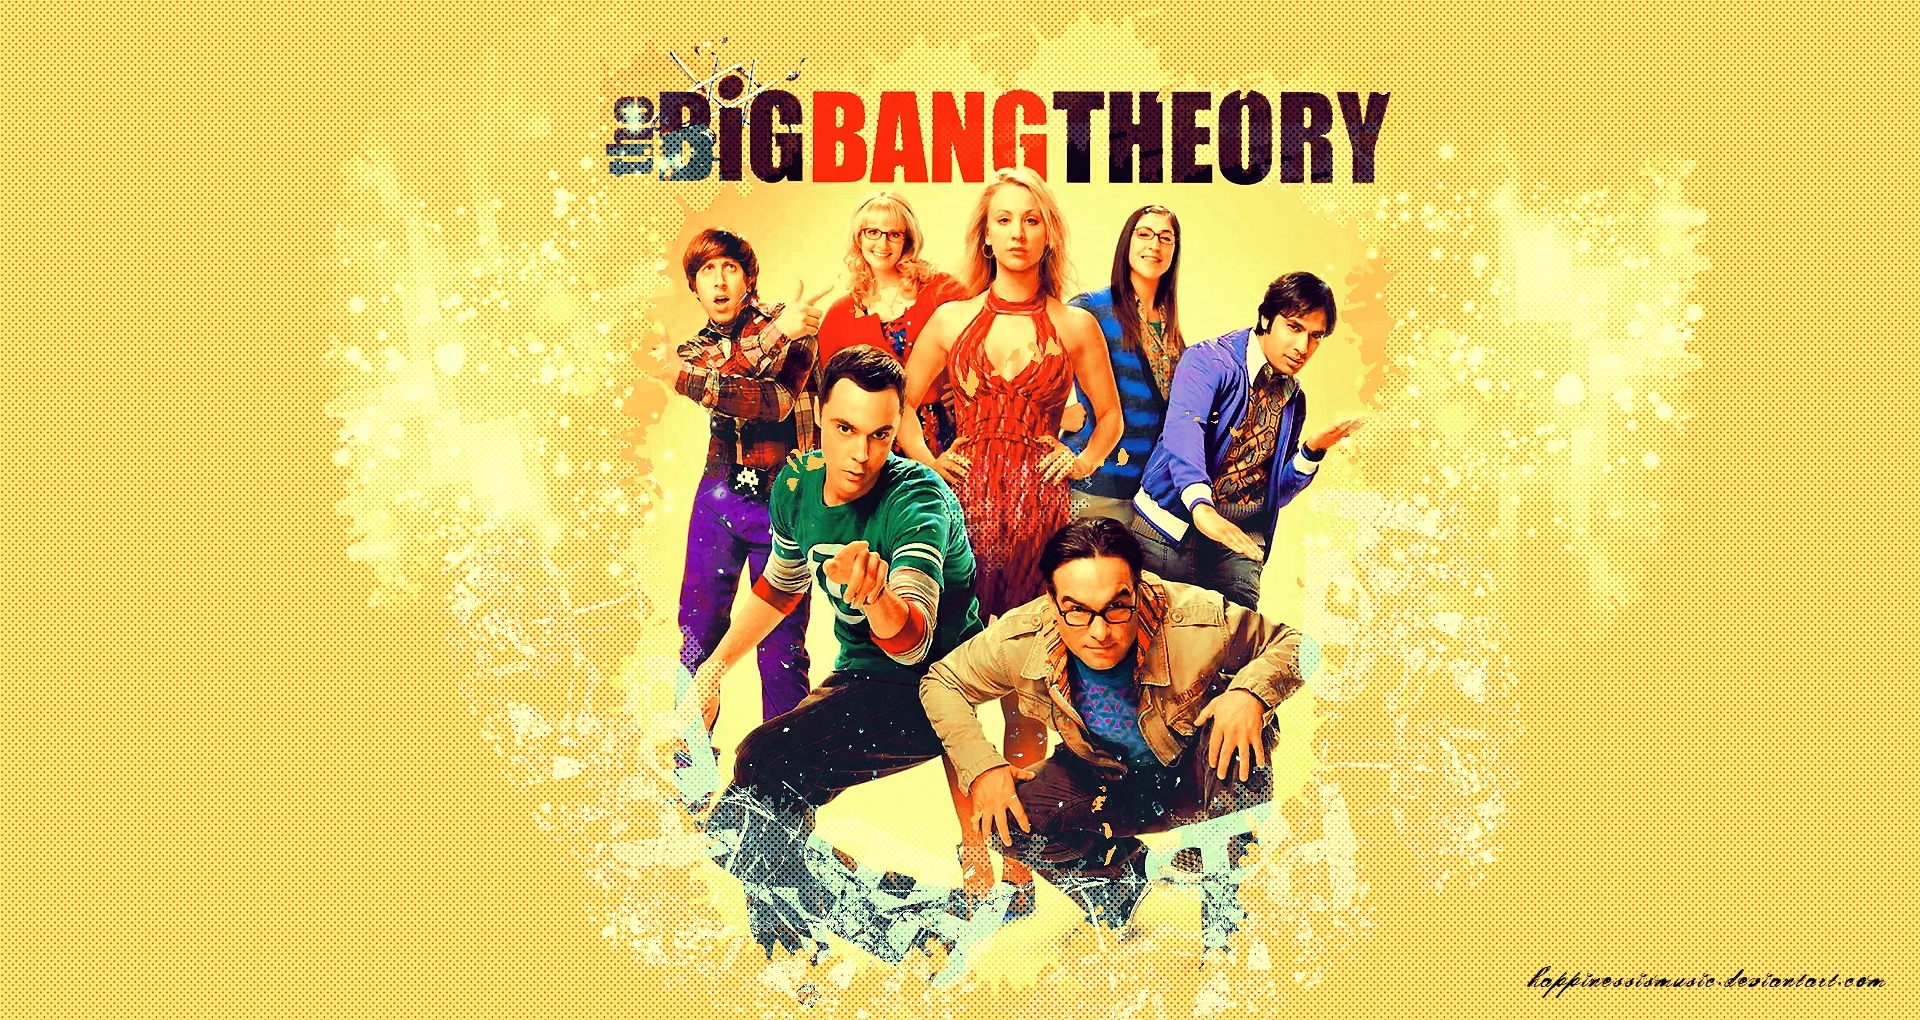 the big bang theory fond d'écran and arrière-plan | 1920x1020 | id